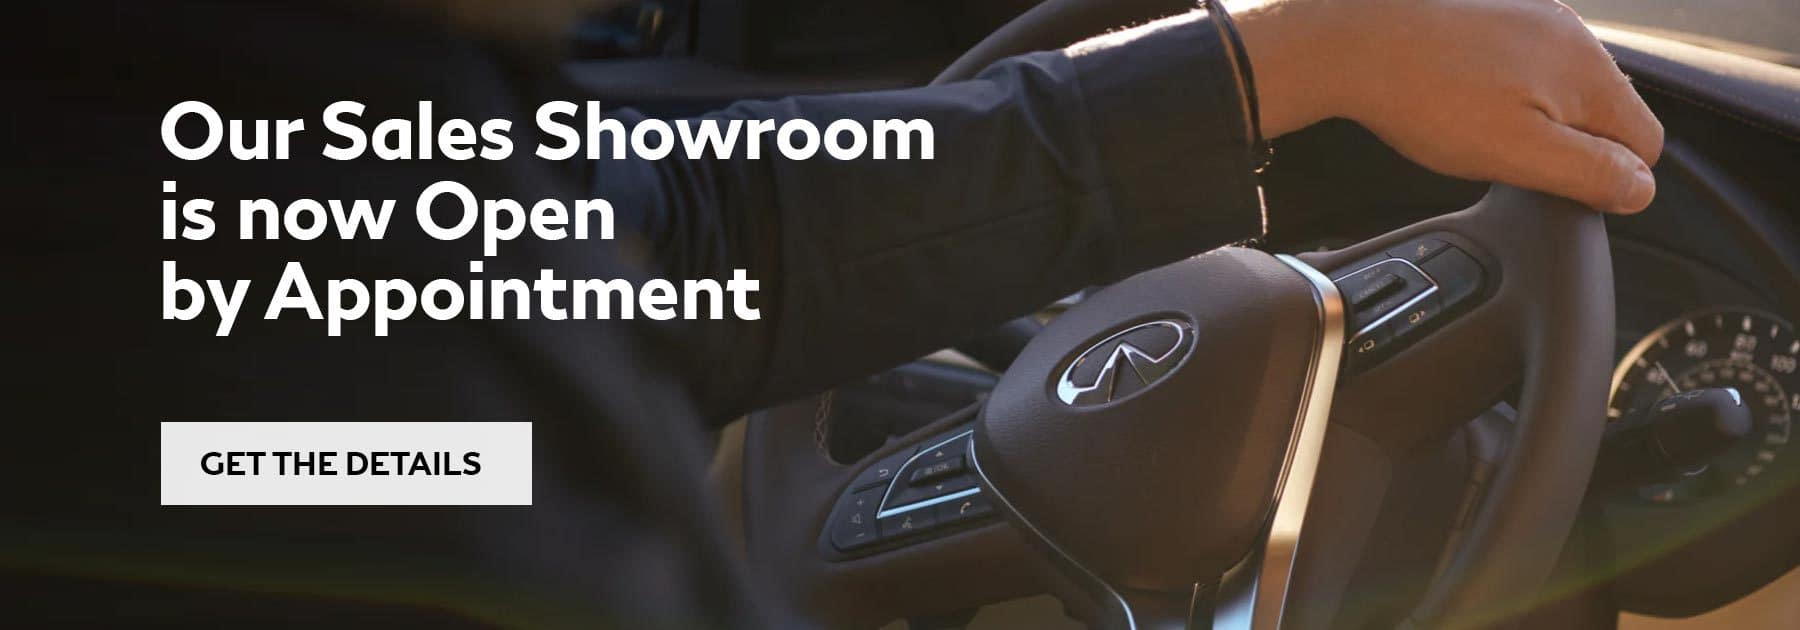 Our Sales Showroom is now Open by Appointment